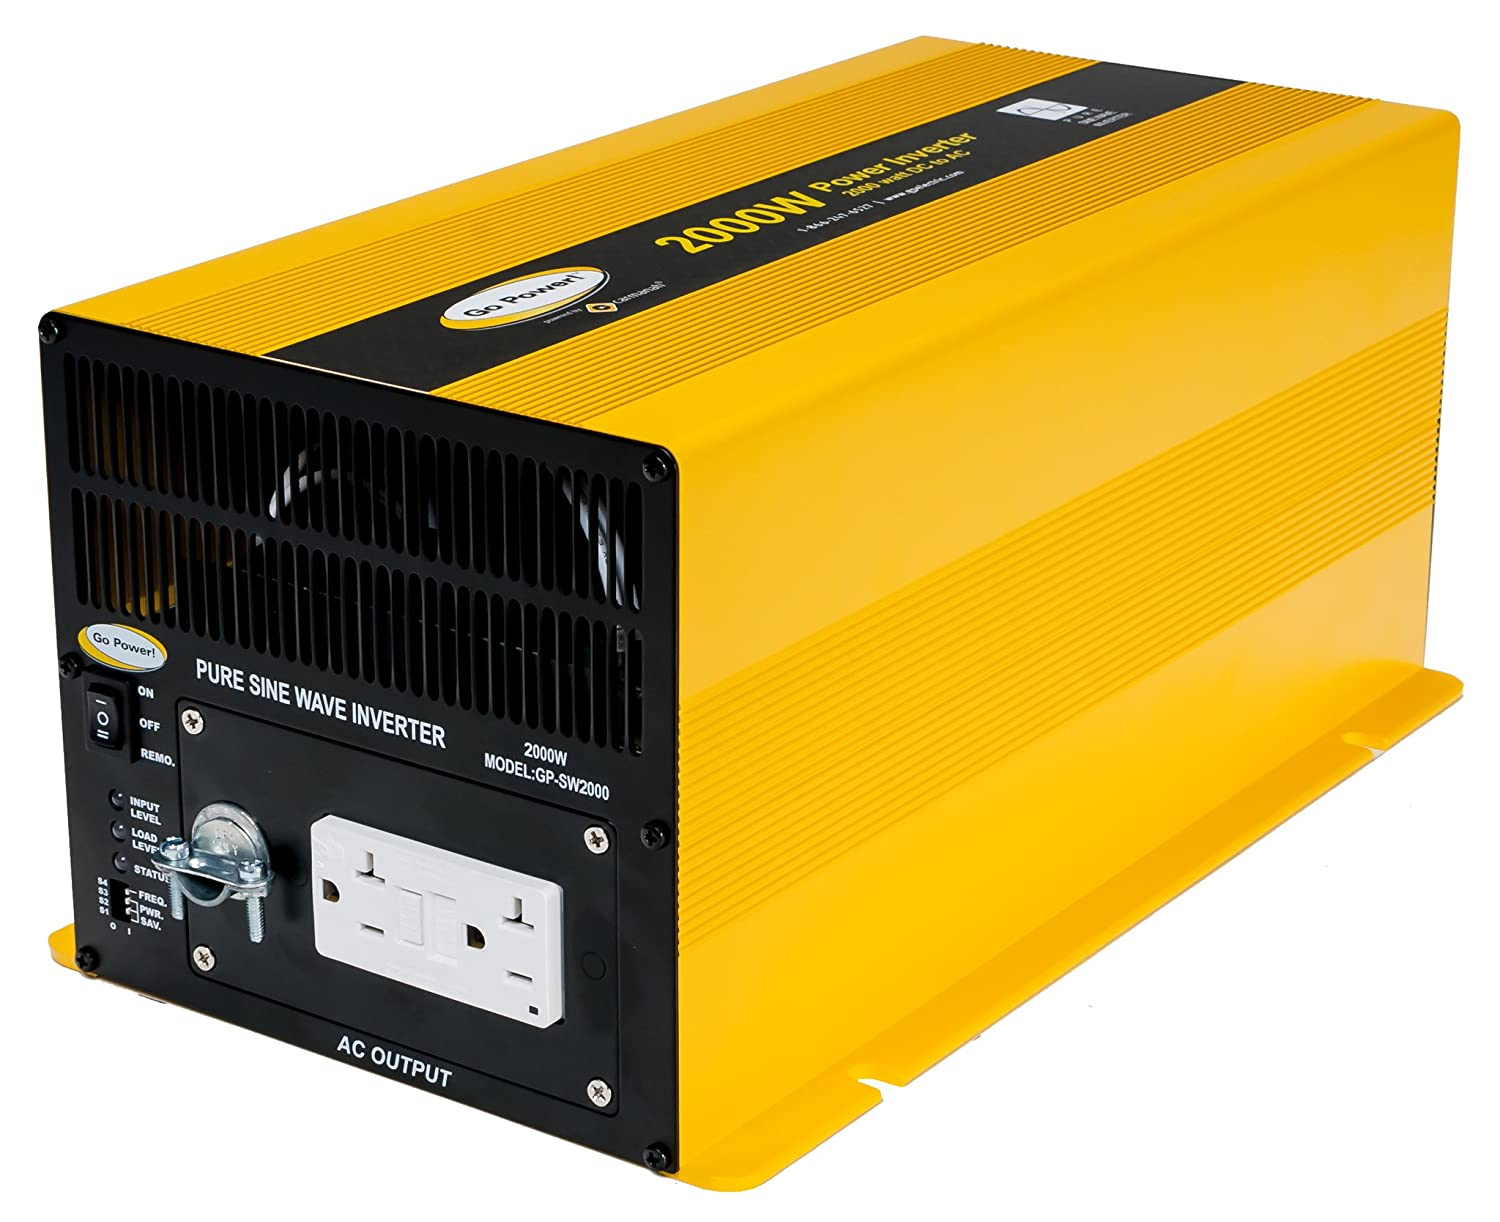 Go Power Gp Sw2000 12 2000 Watt Pure Sine Wave Inverter Modifying Square Inverters To Equivalents Automotive